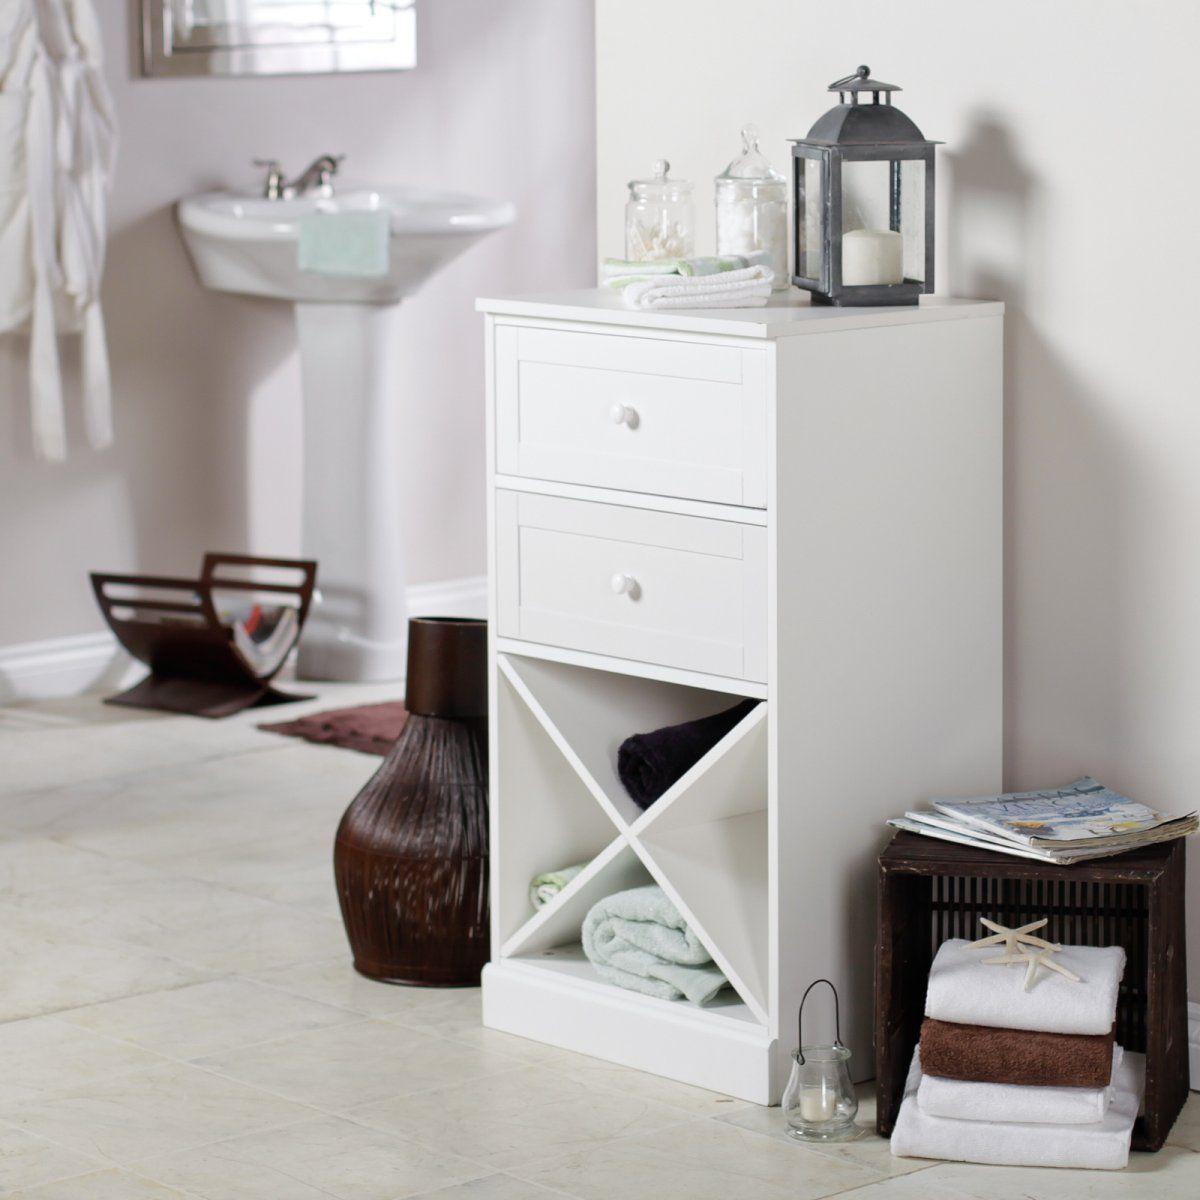 Lucca Home Bathroom Cabinet with Drawers - White - Bathroom Cabinets ...